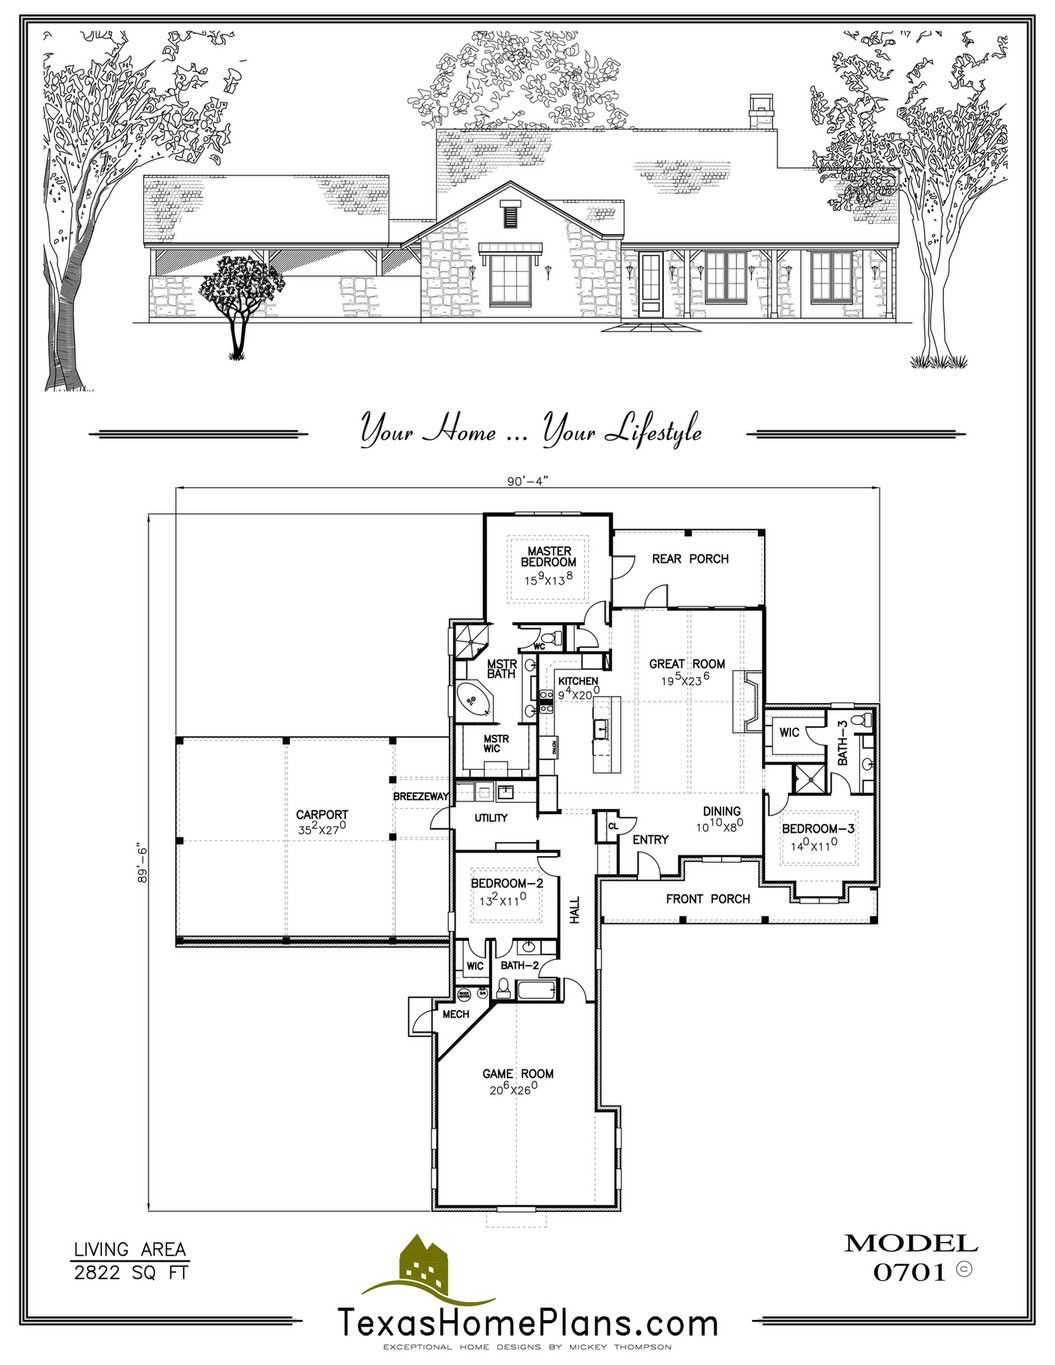 Texas Home Floor Plans And Designs on texas ranch style home plans, custom home floor plans, one story floor plans, dallas style home plans, ranch modular home floor plans,